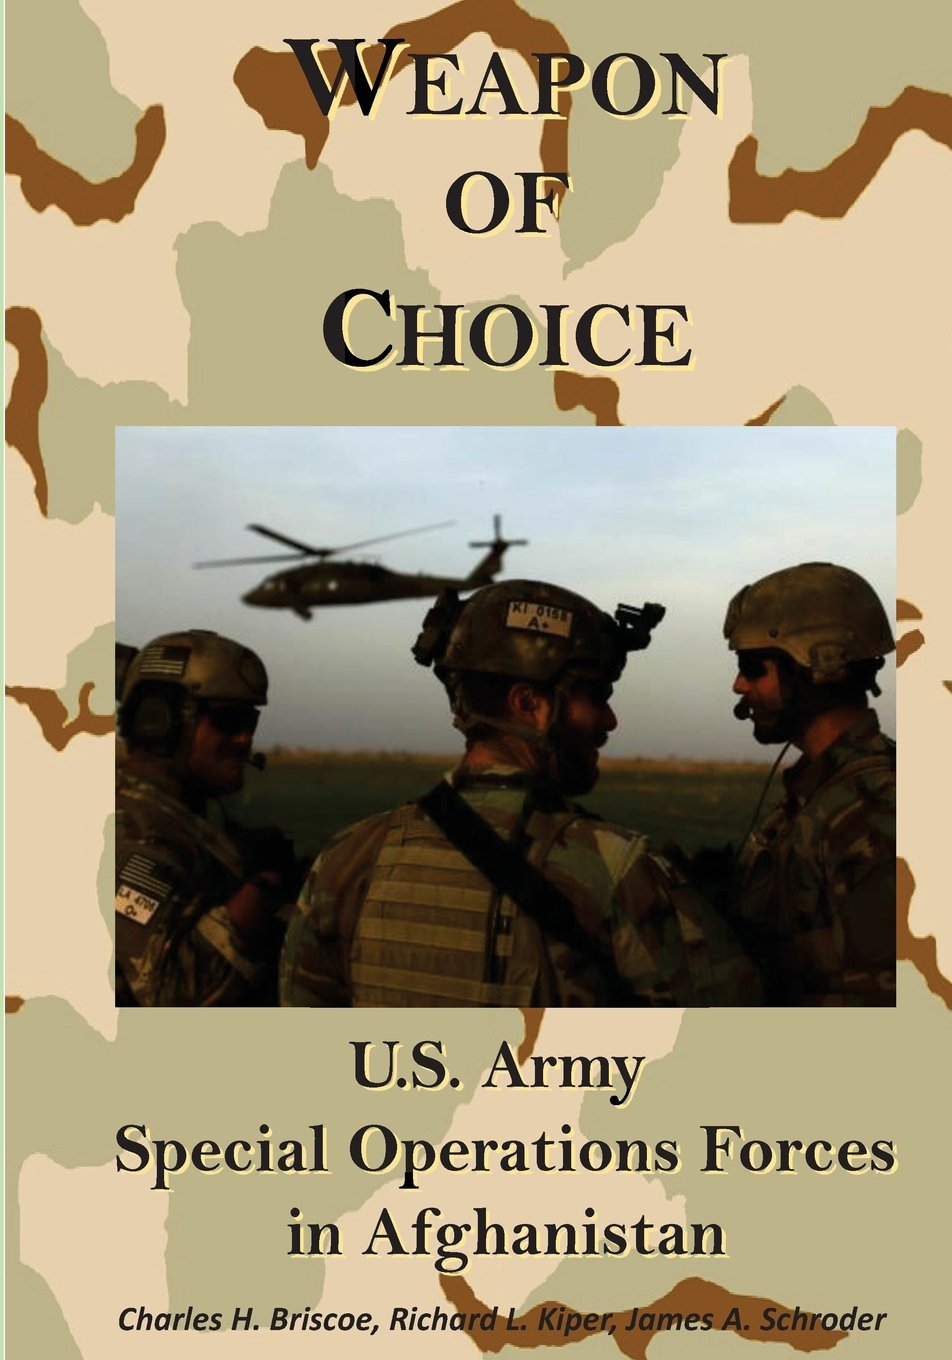 Weapon of Choice: U.S. Army Special Operations Forces in Afghanistan